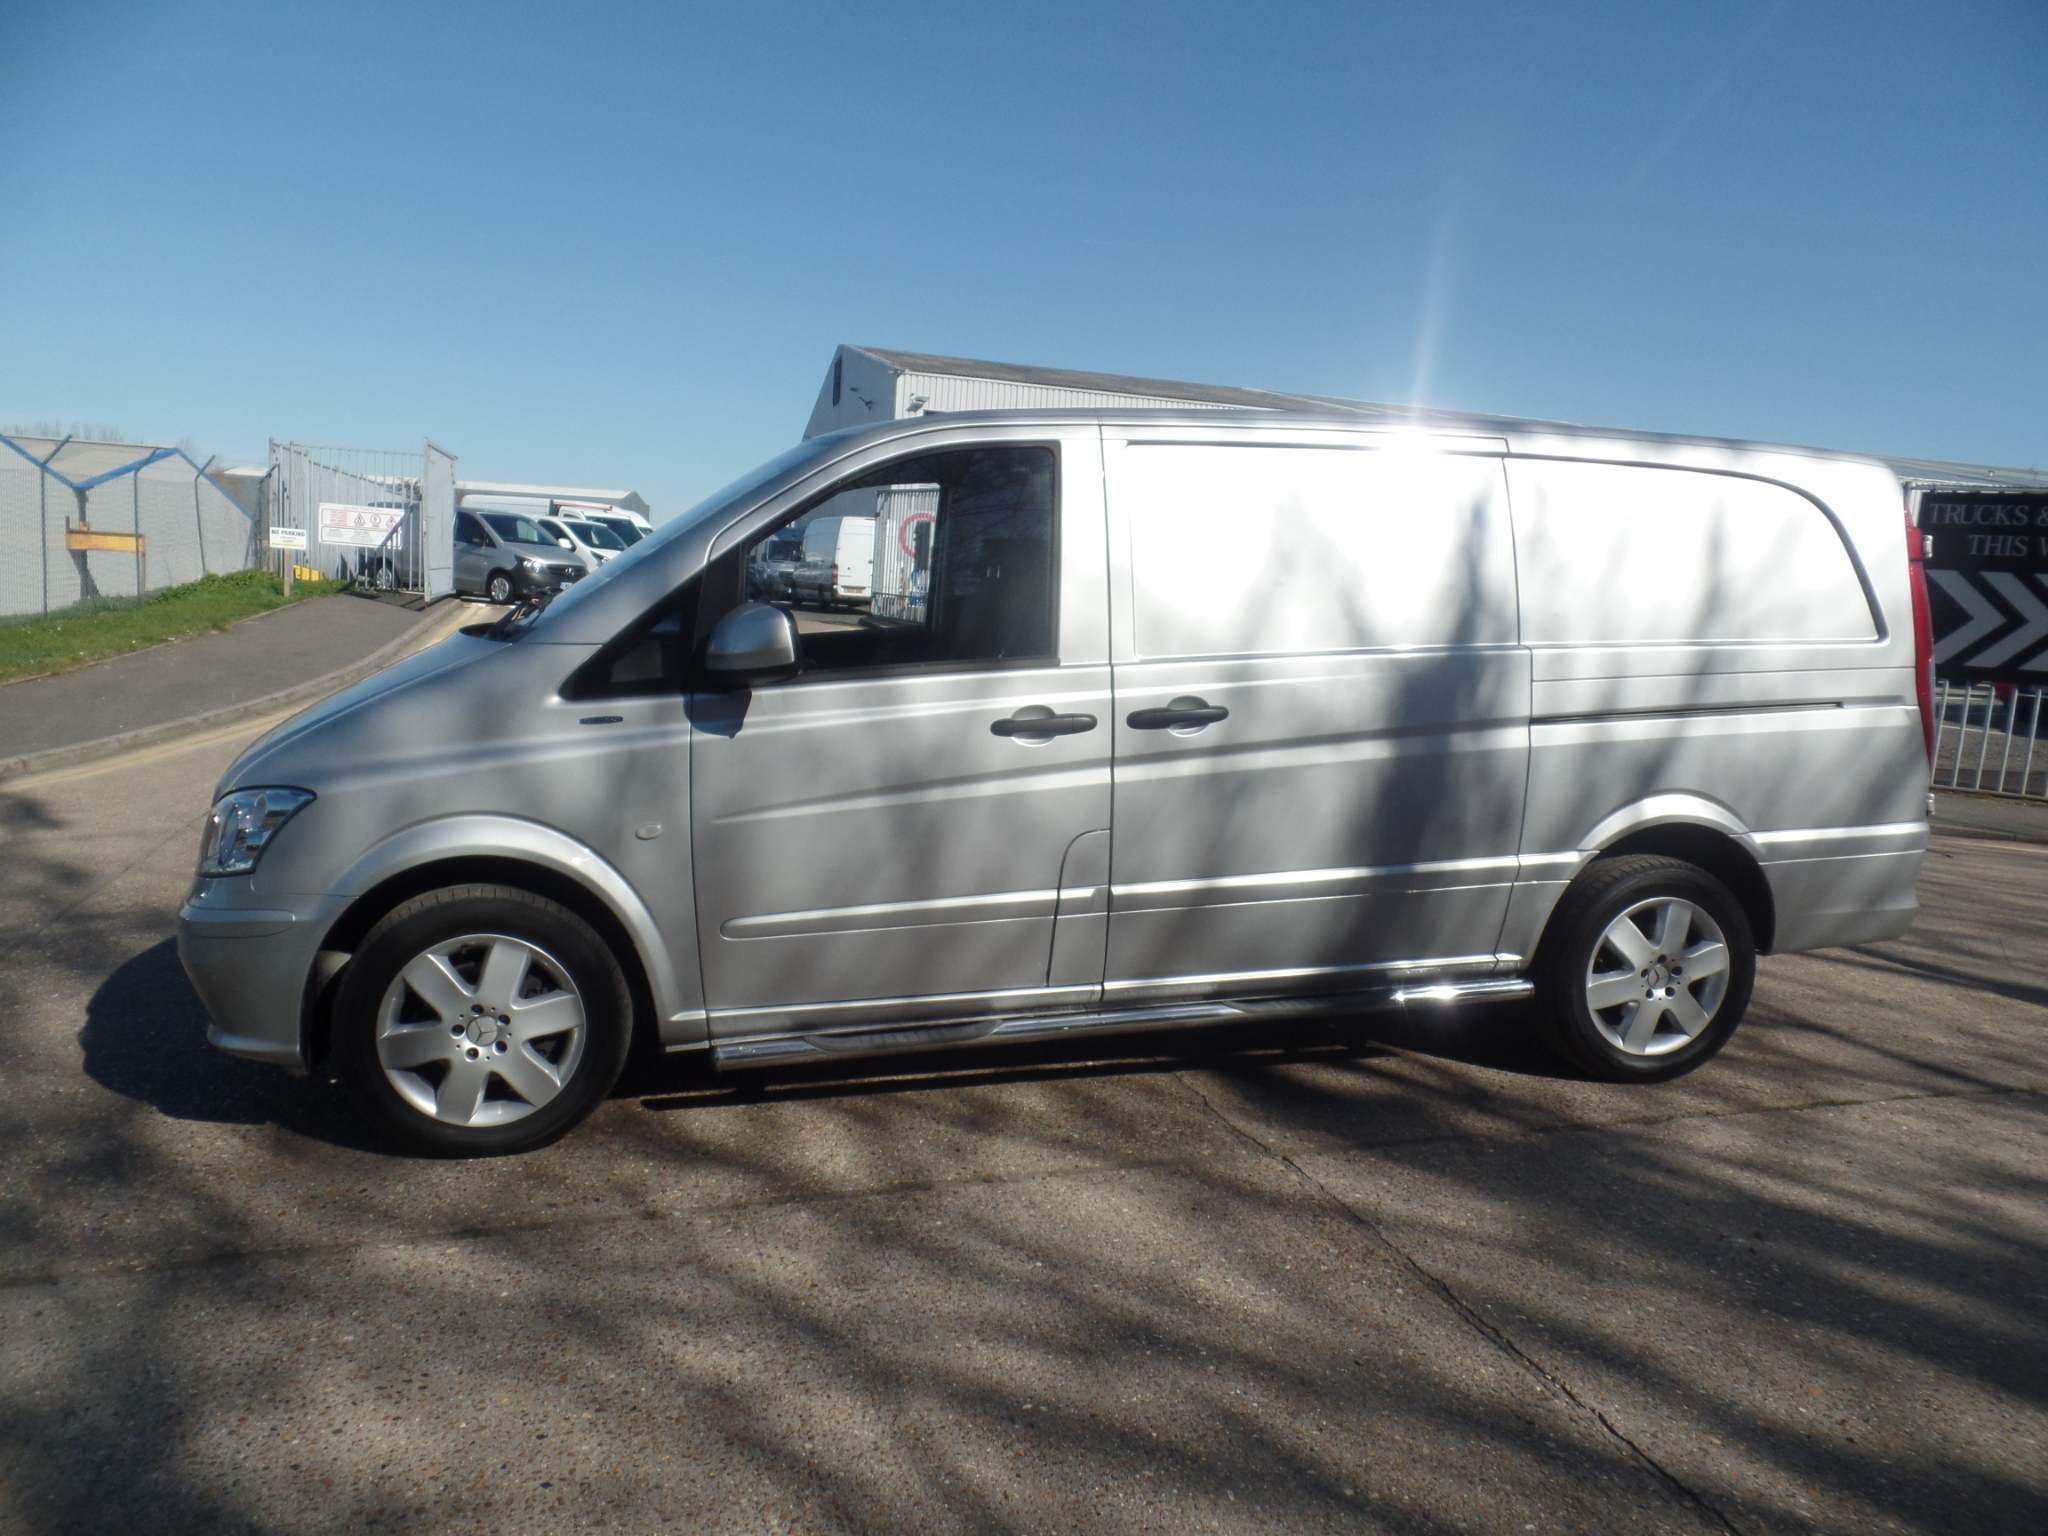 Mercedes-Benz Vito 2.1 116CDI BlueEFFICIENCY Long Panel Van 5dr (EU5) - image 3